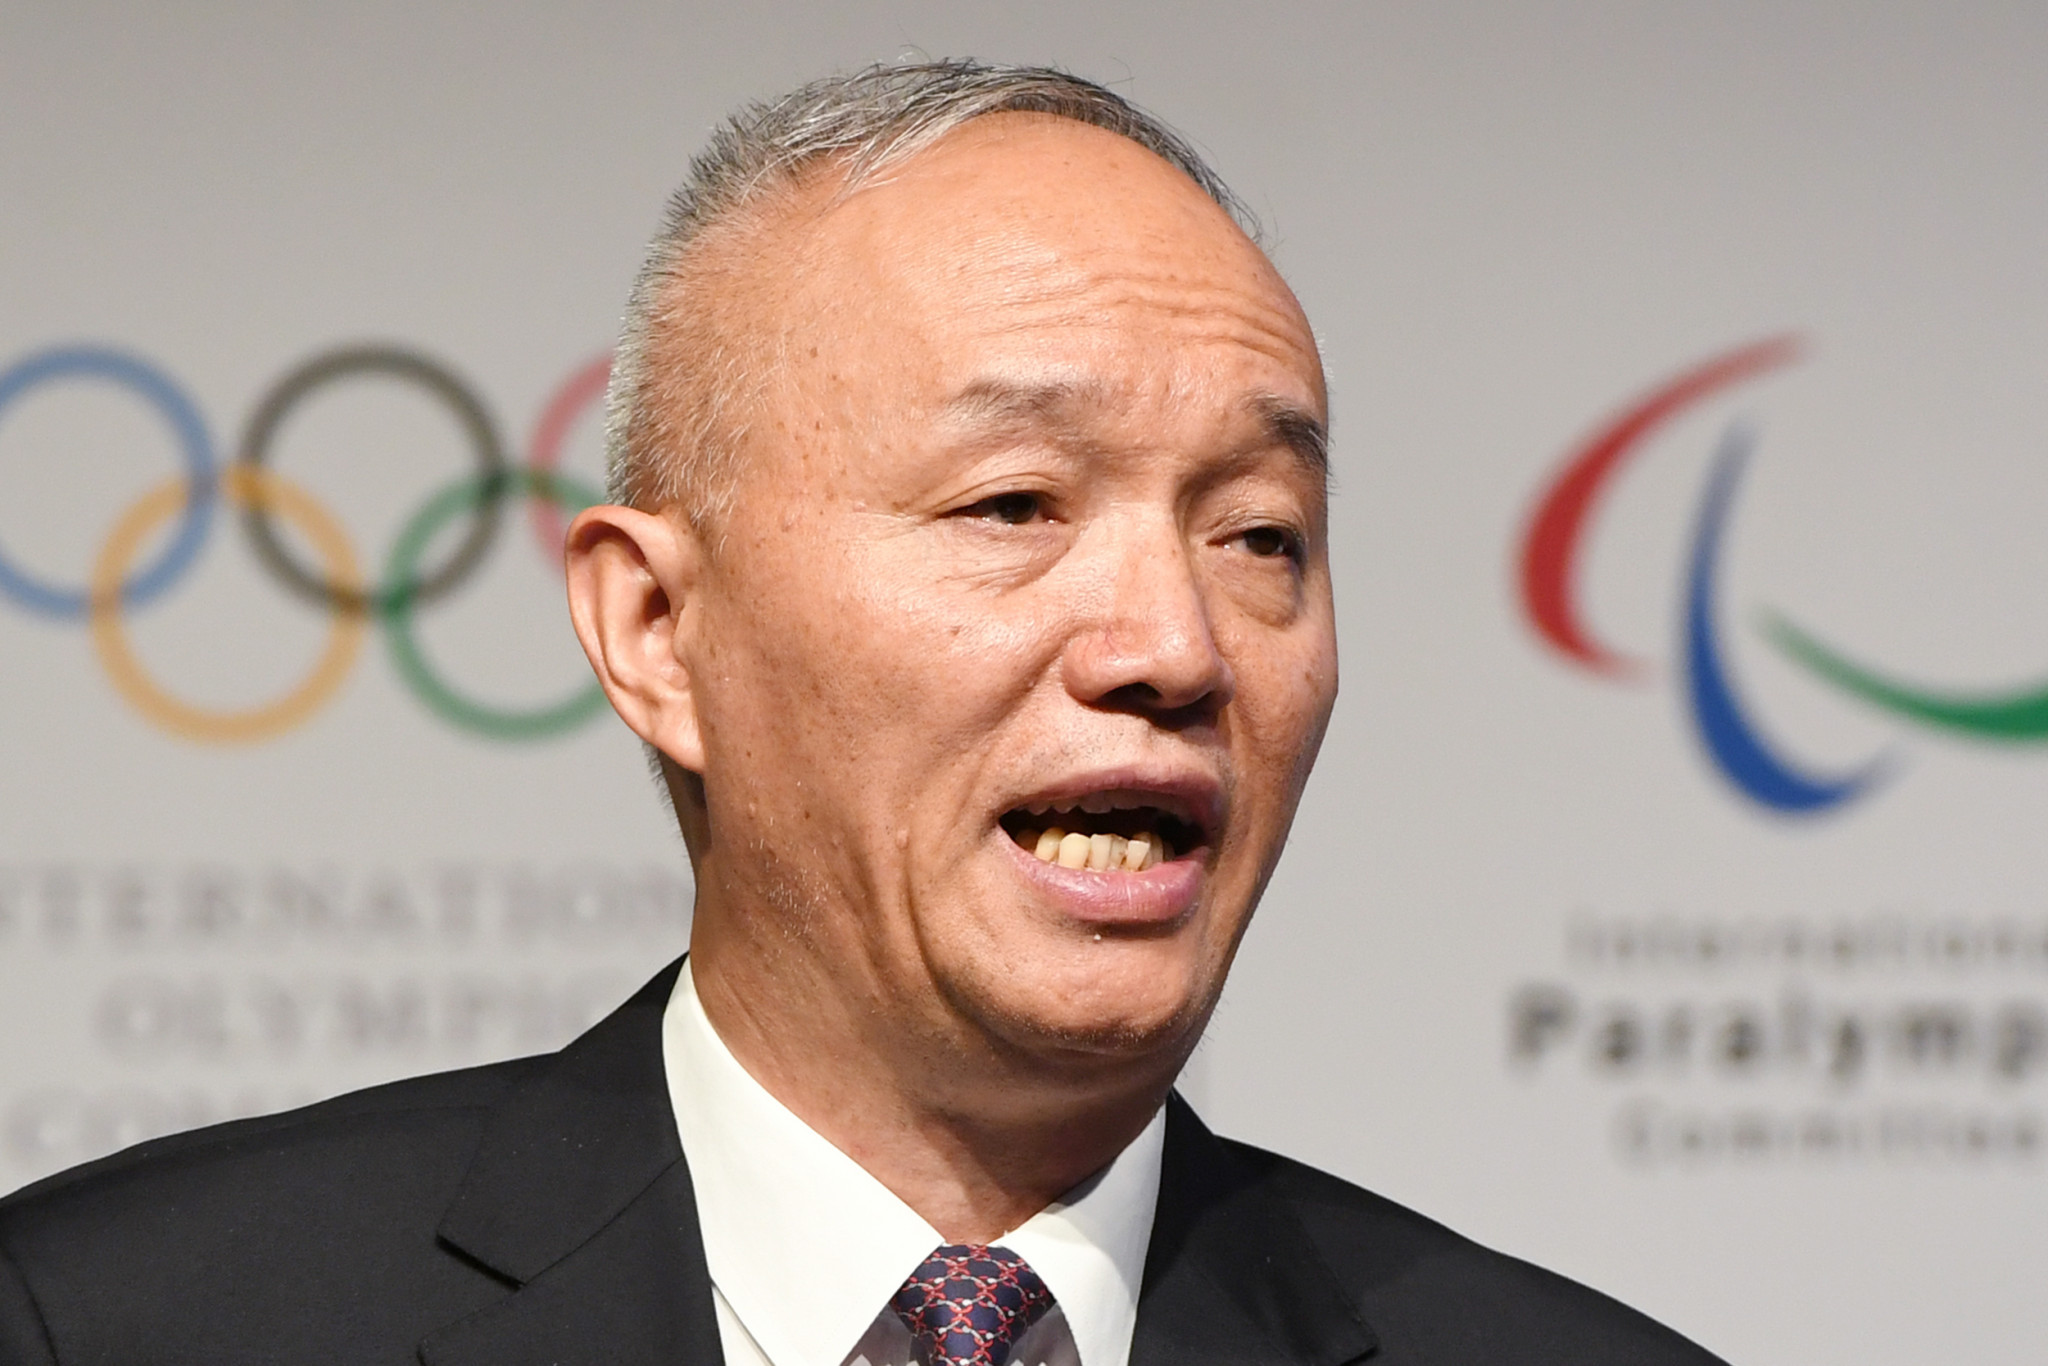 """Beijing 2022 President Cai Qi has vowed to implement """"strict epidemic prevention and control"""" at the Winter Olympics and Paralympics ©Getty Images"""